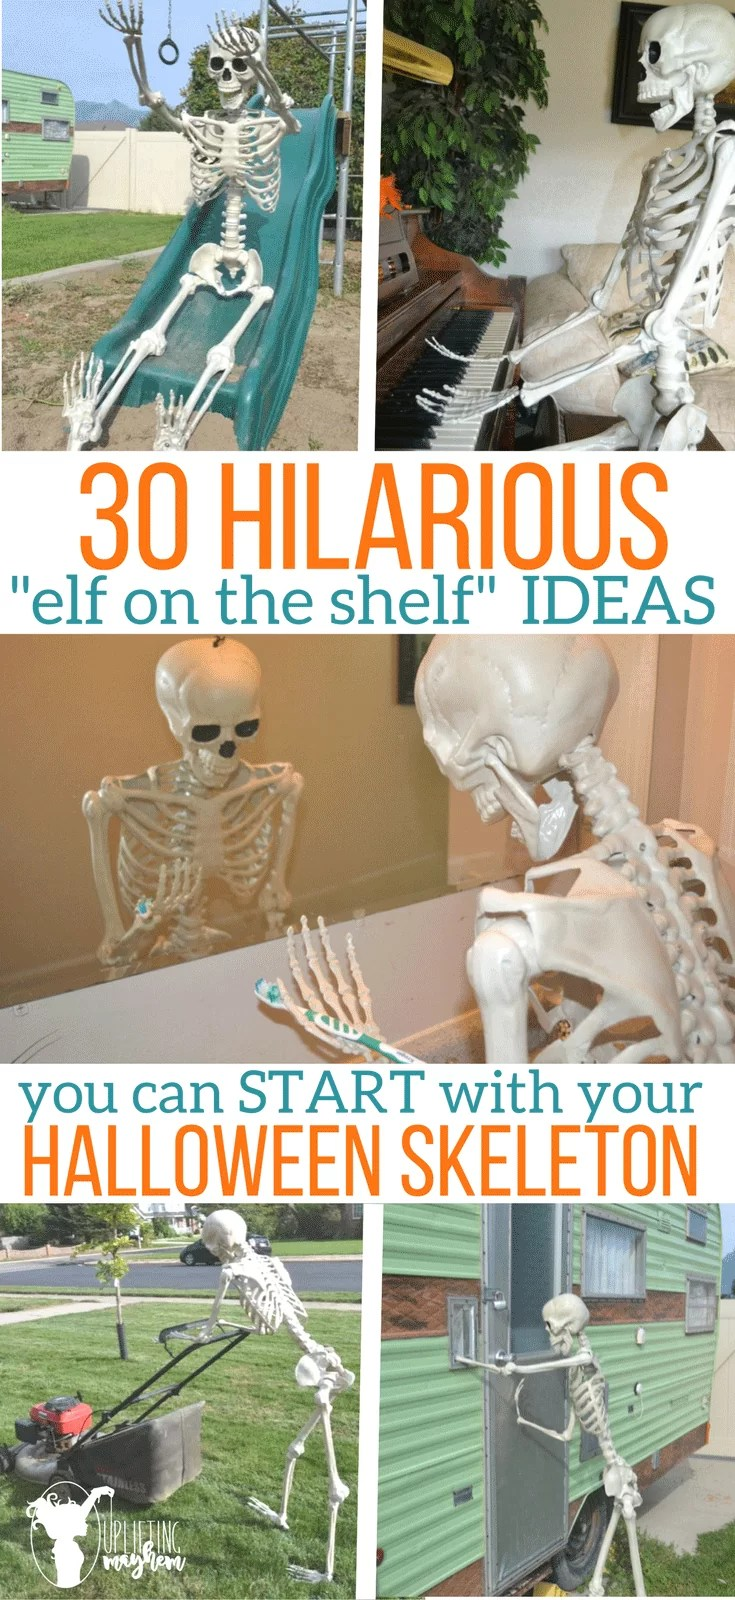 """30 Hilarious """"elf on the shelf"""" IDEAS you can start with your Halloween Skeleton"""